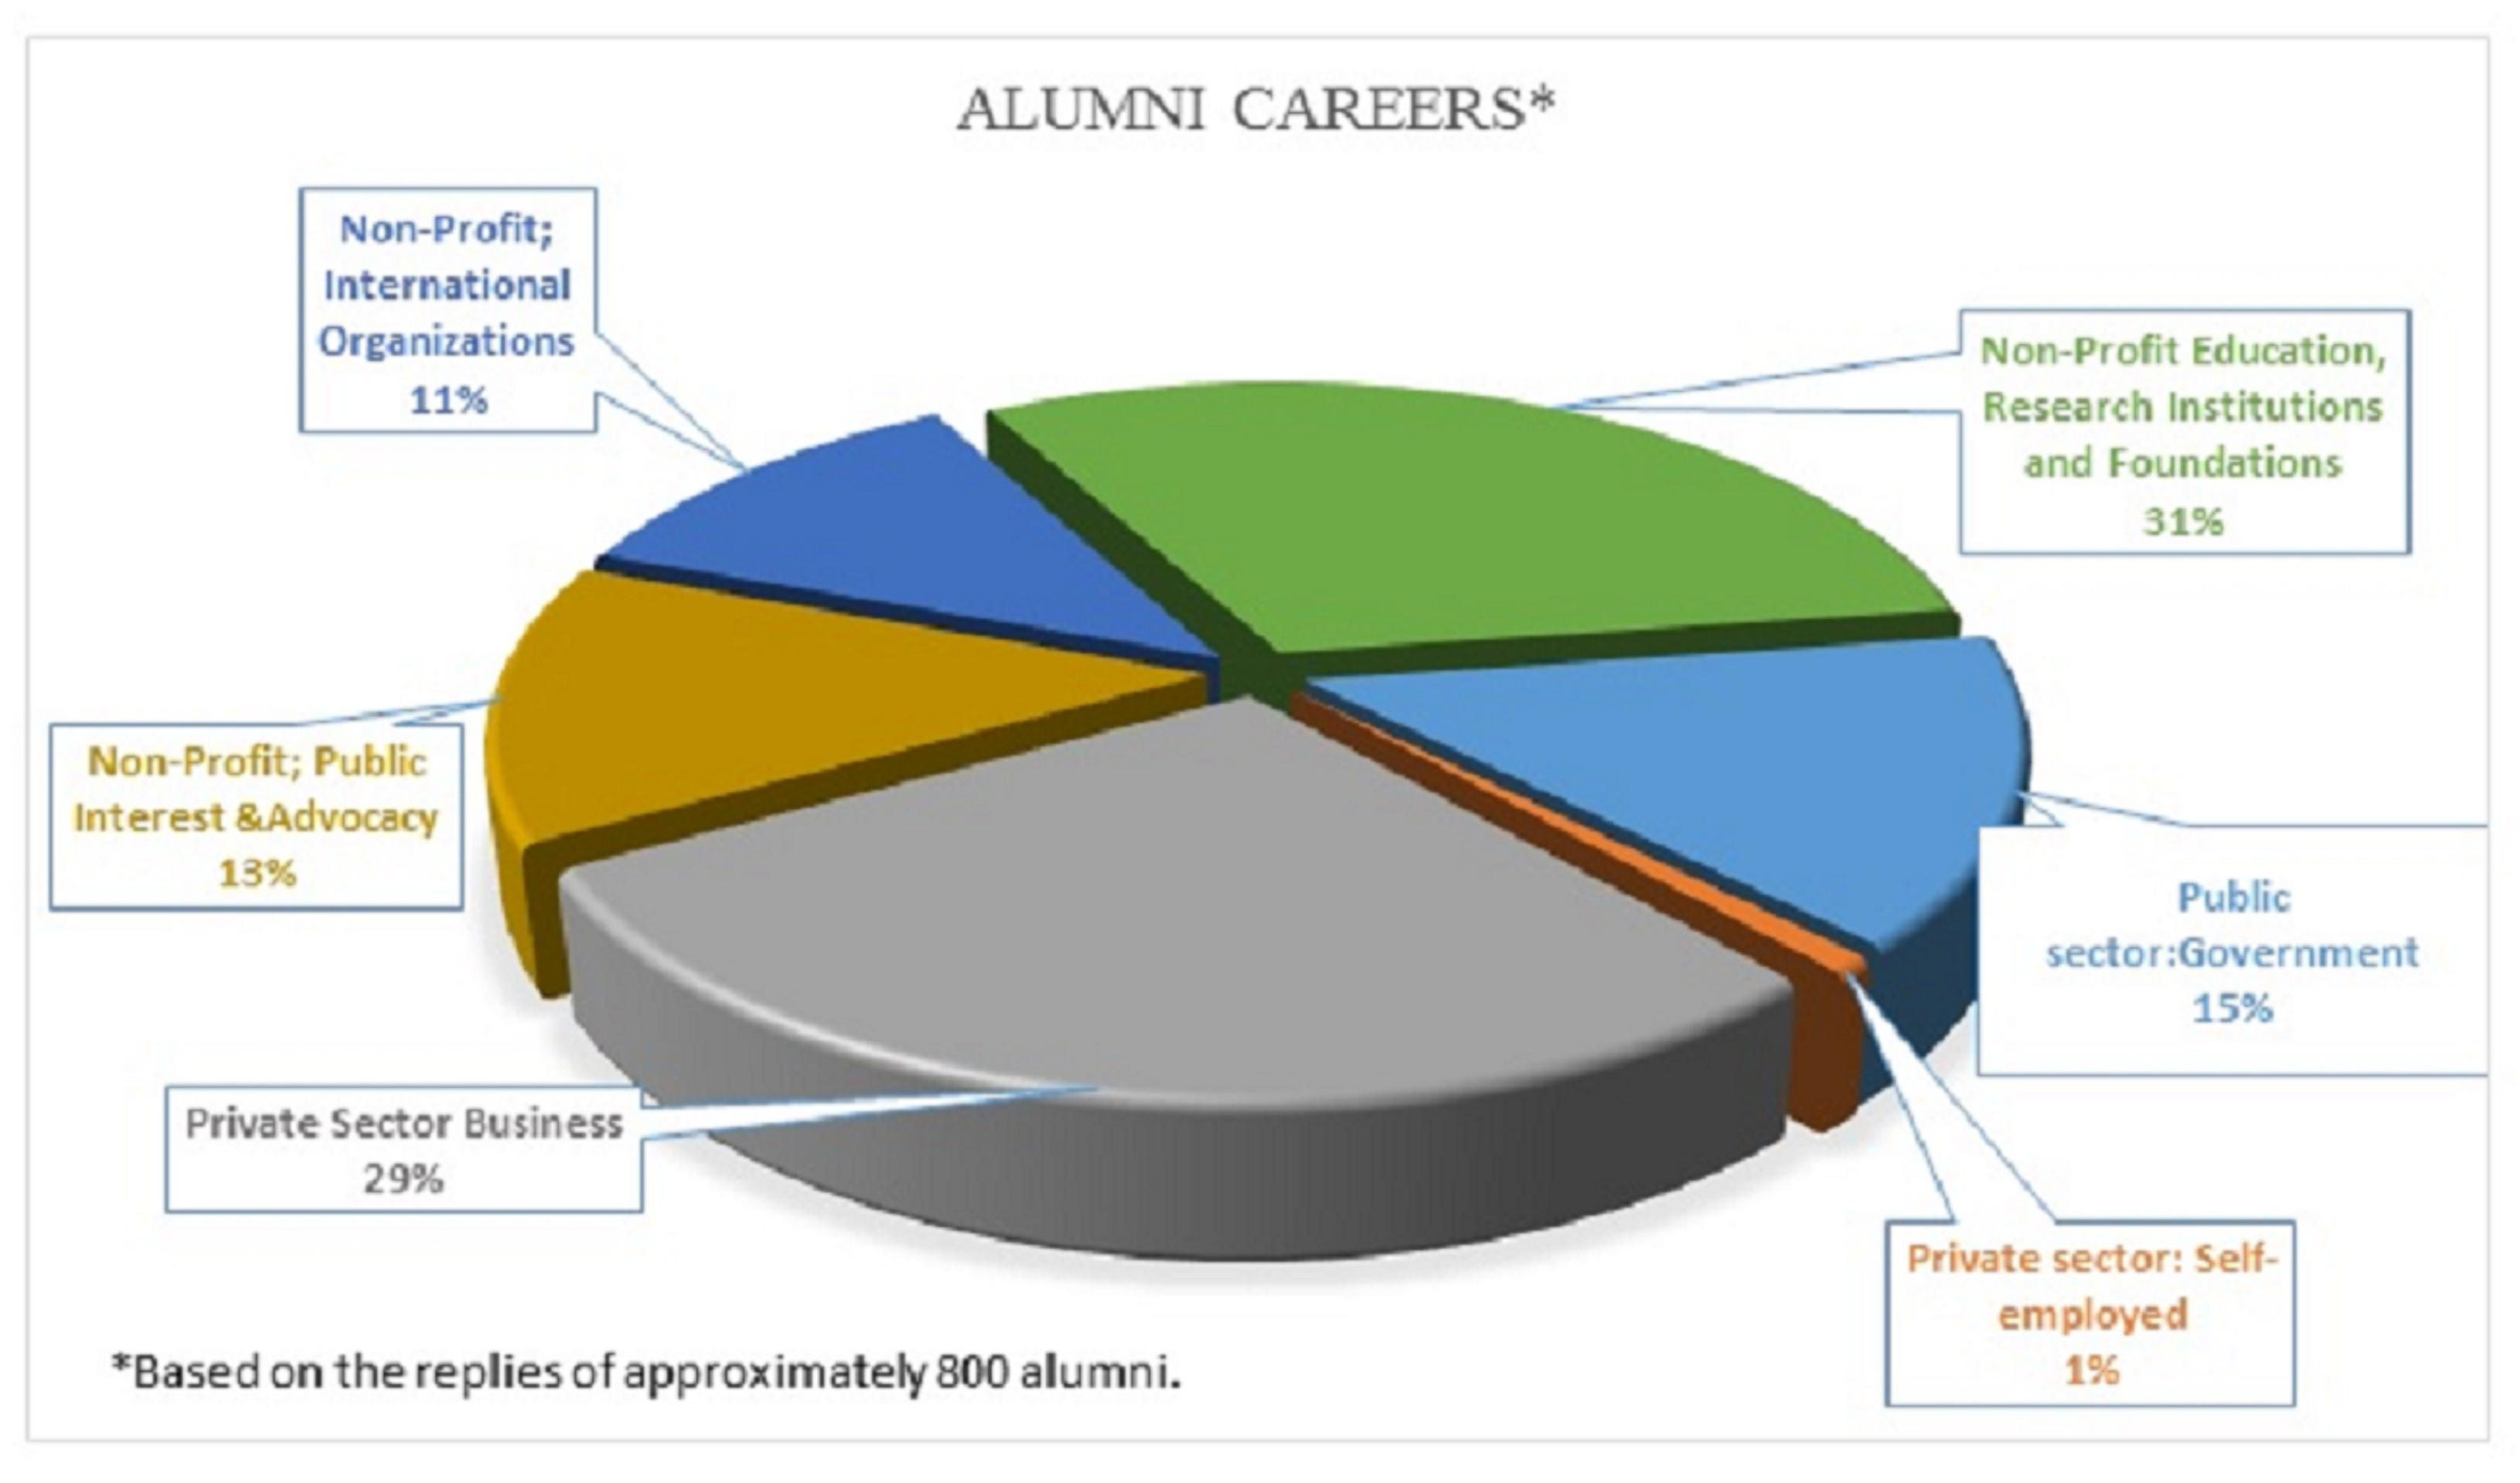 Alumni Careers  Department Of Political Science. Delaware Adult Education Social Media Release. Car Insurance Without License. Sales Application Engineer Media And Obesity. Ez Storage South Bowie Online Language Course. Solar Energy Management Pay With Mobile Phone. Paypal Corporate Phone Number. Best Marketing Automation Software. Growth Of Internet Advertising